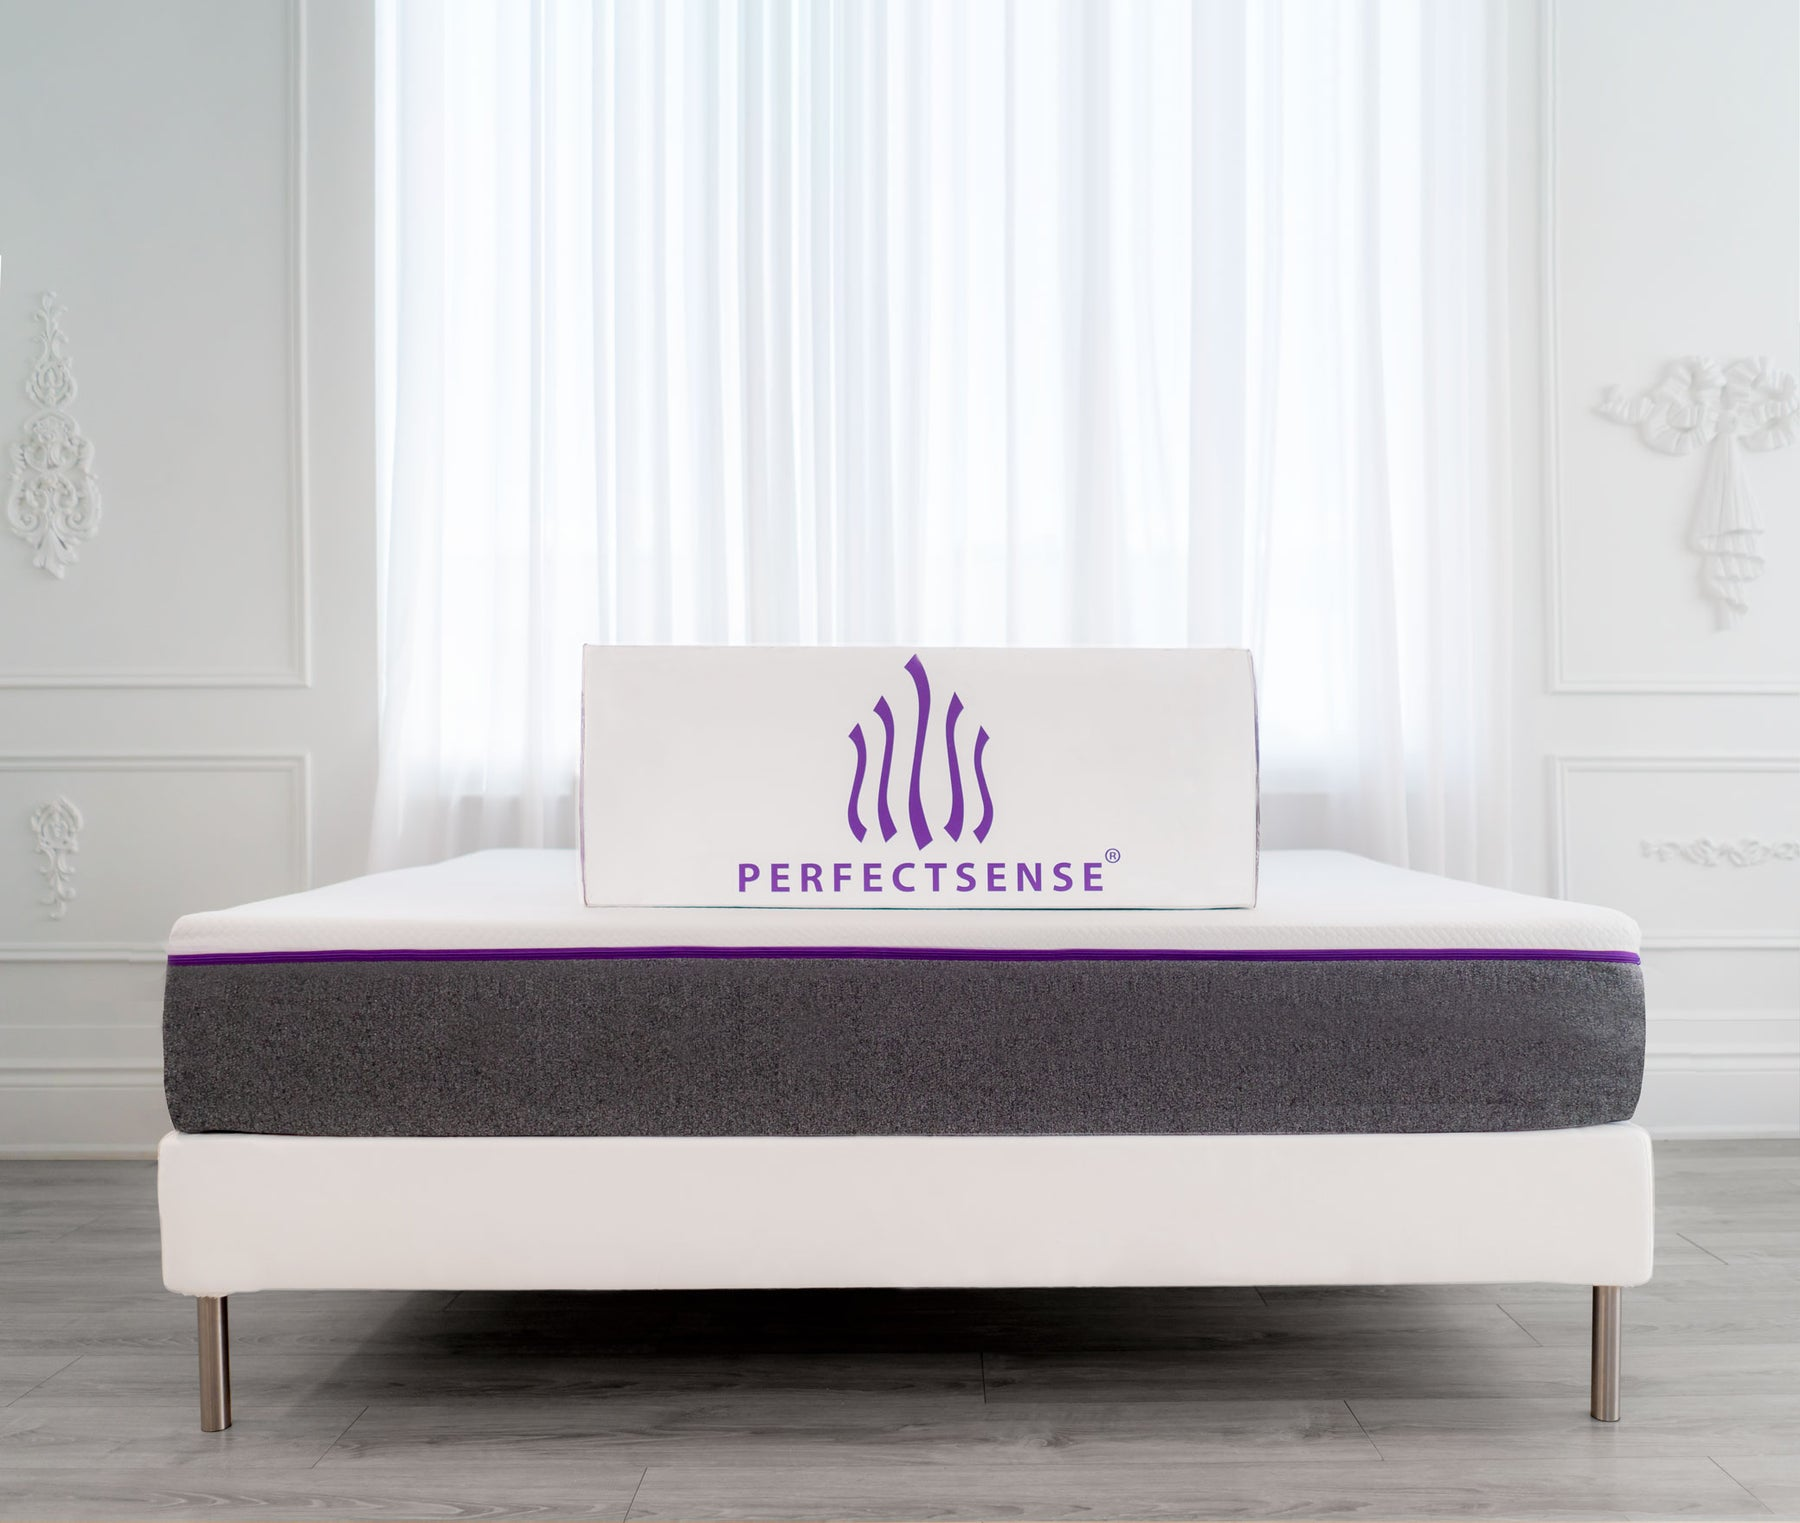 PerfectSense packaging atop mattress and foundation in white room